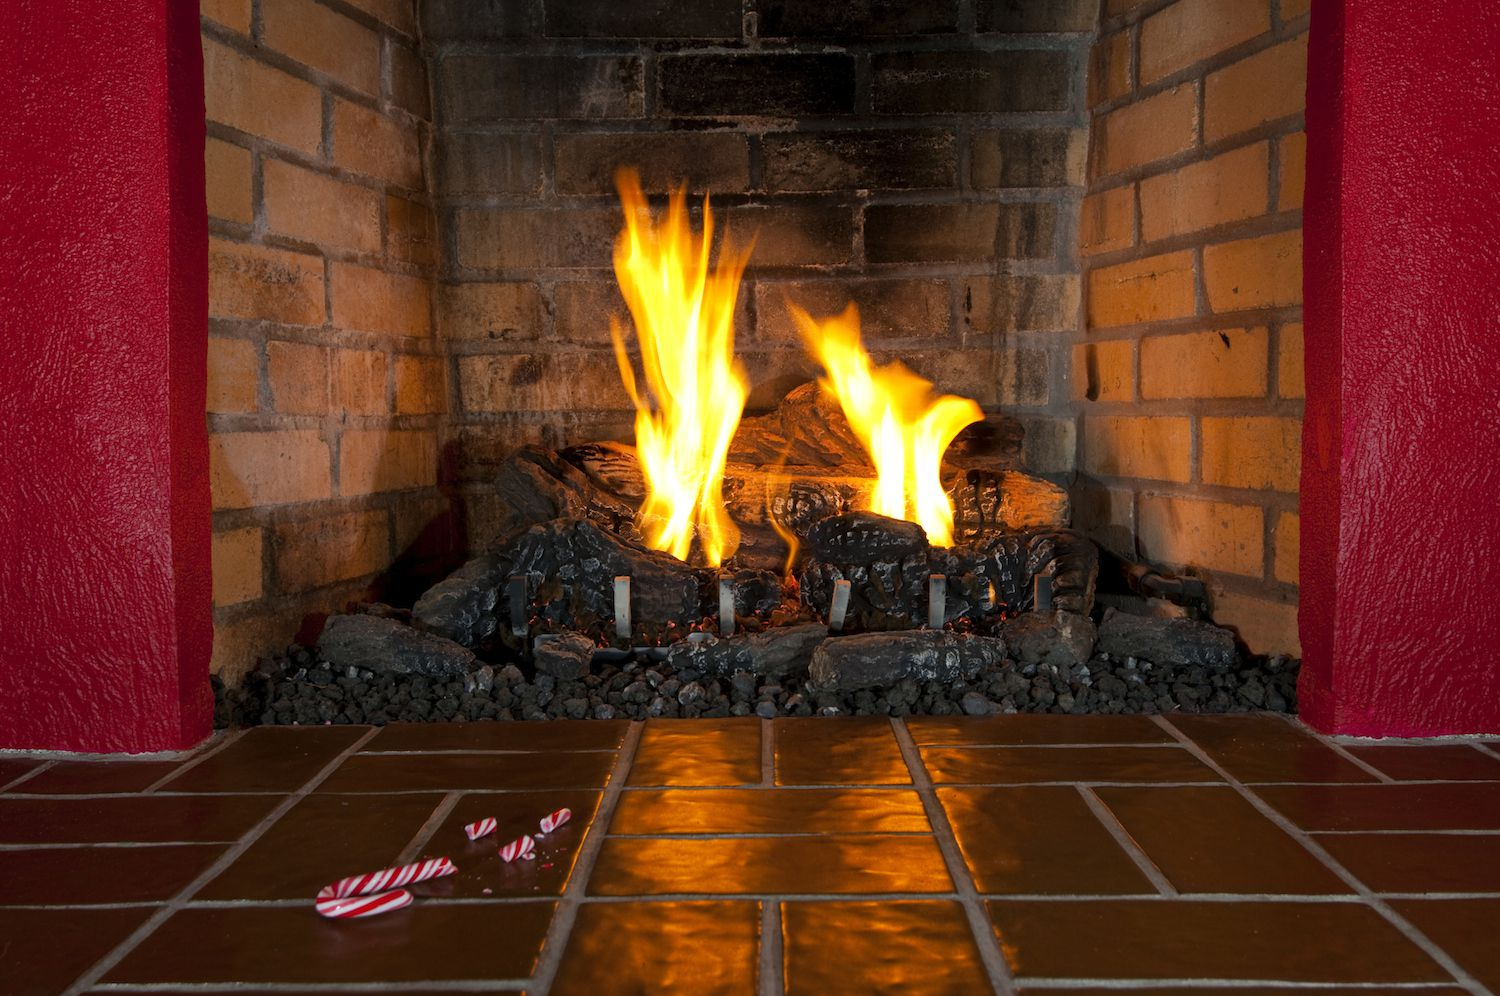 Yule log pictures images Dinosaur Pictures to print out and color - Dino Fun